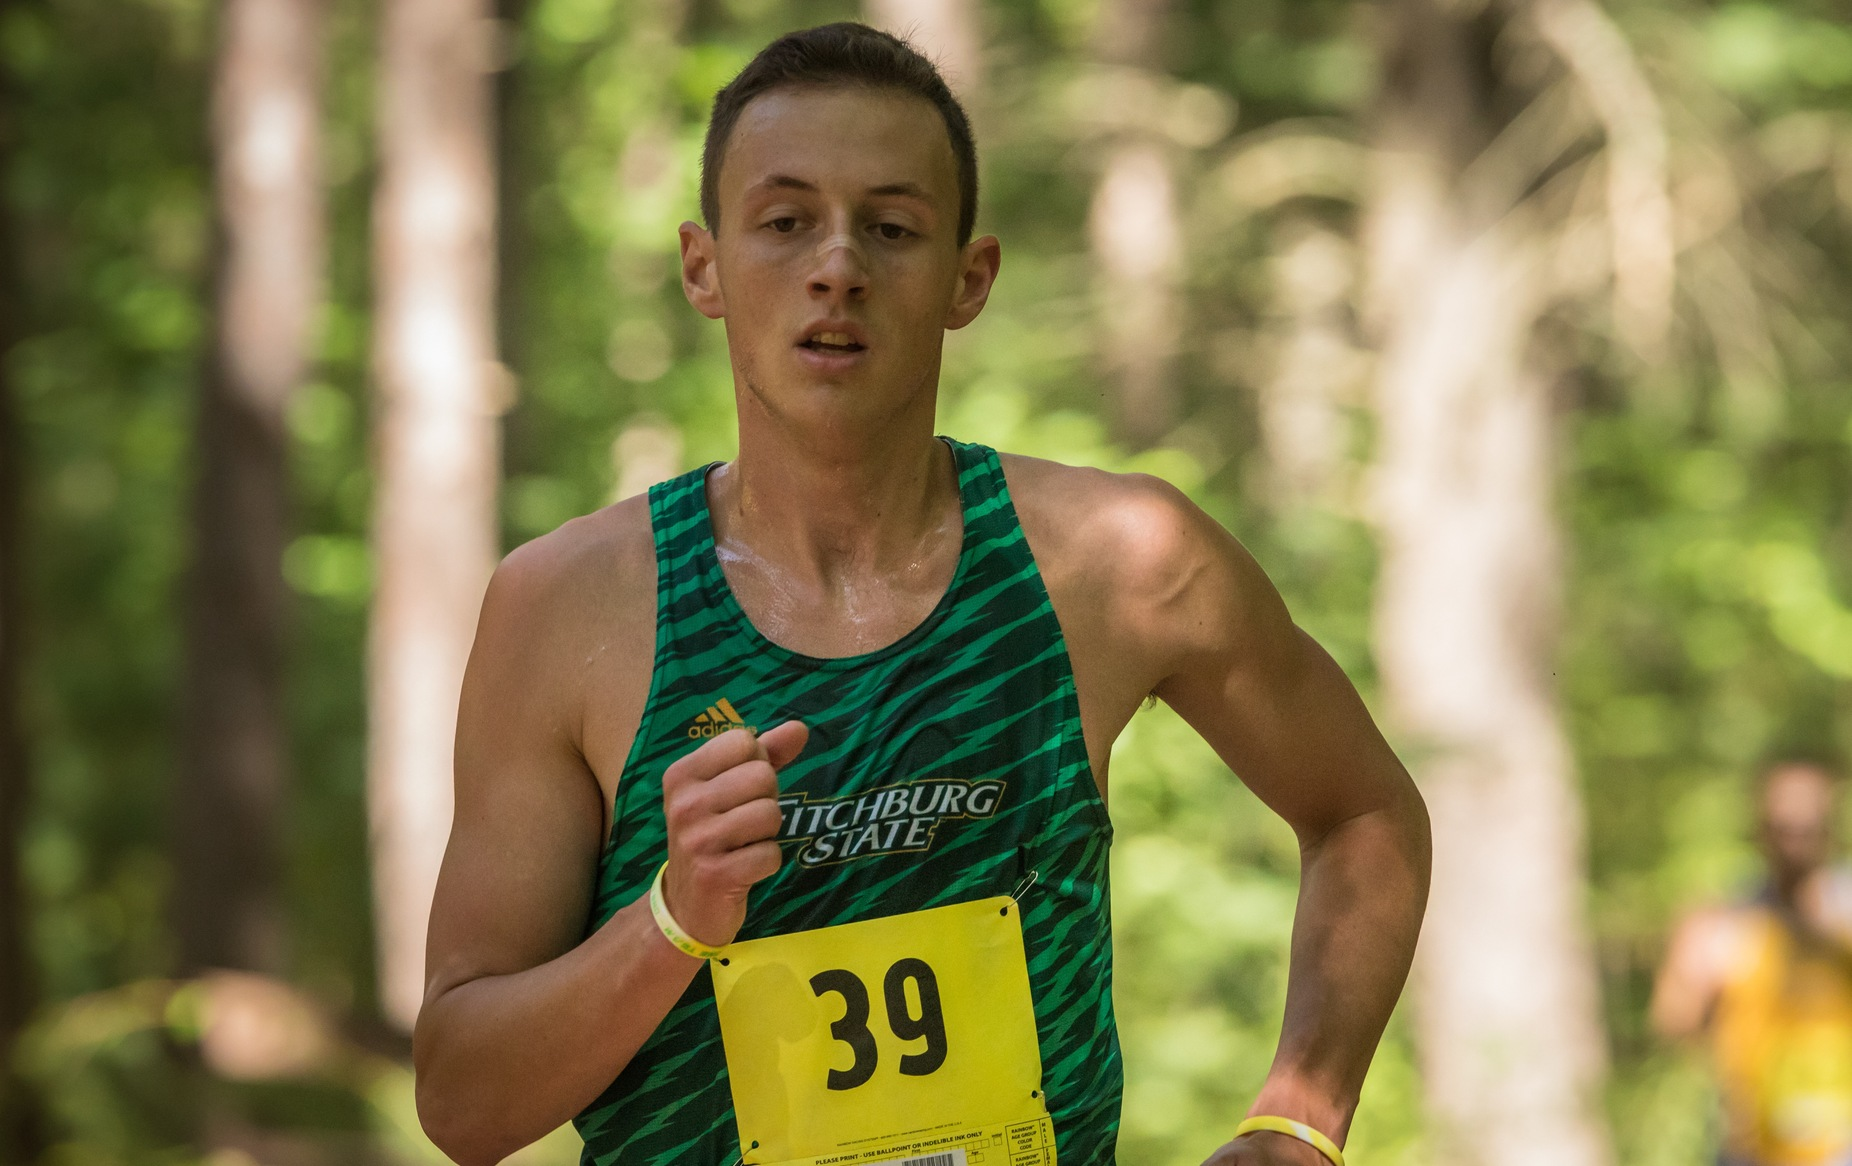 Fitchburg State Races At Bantam Invitational